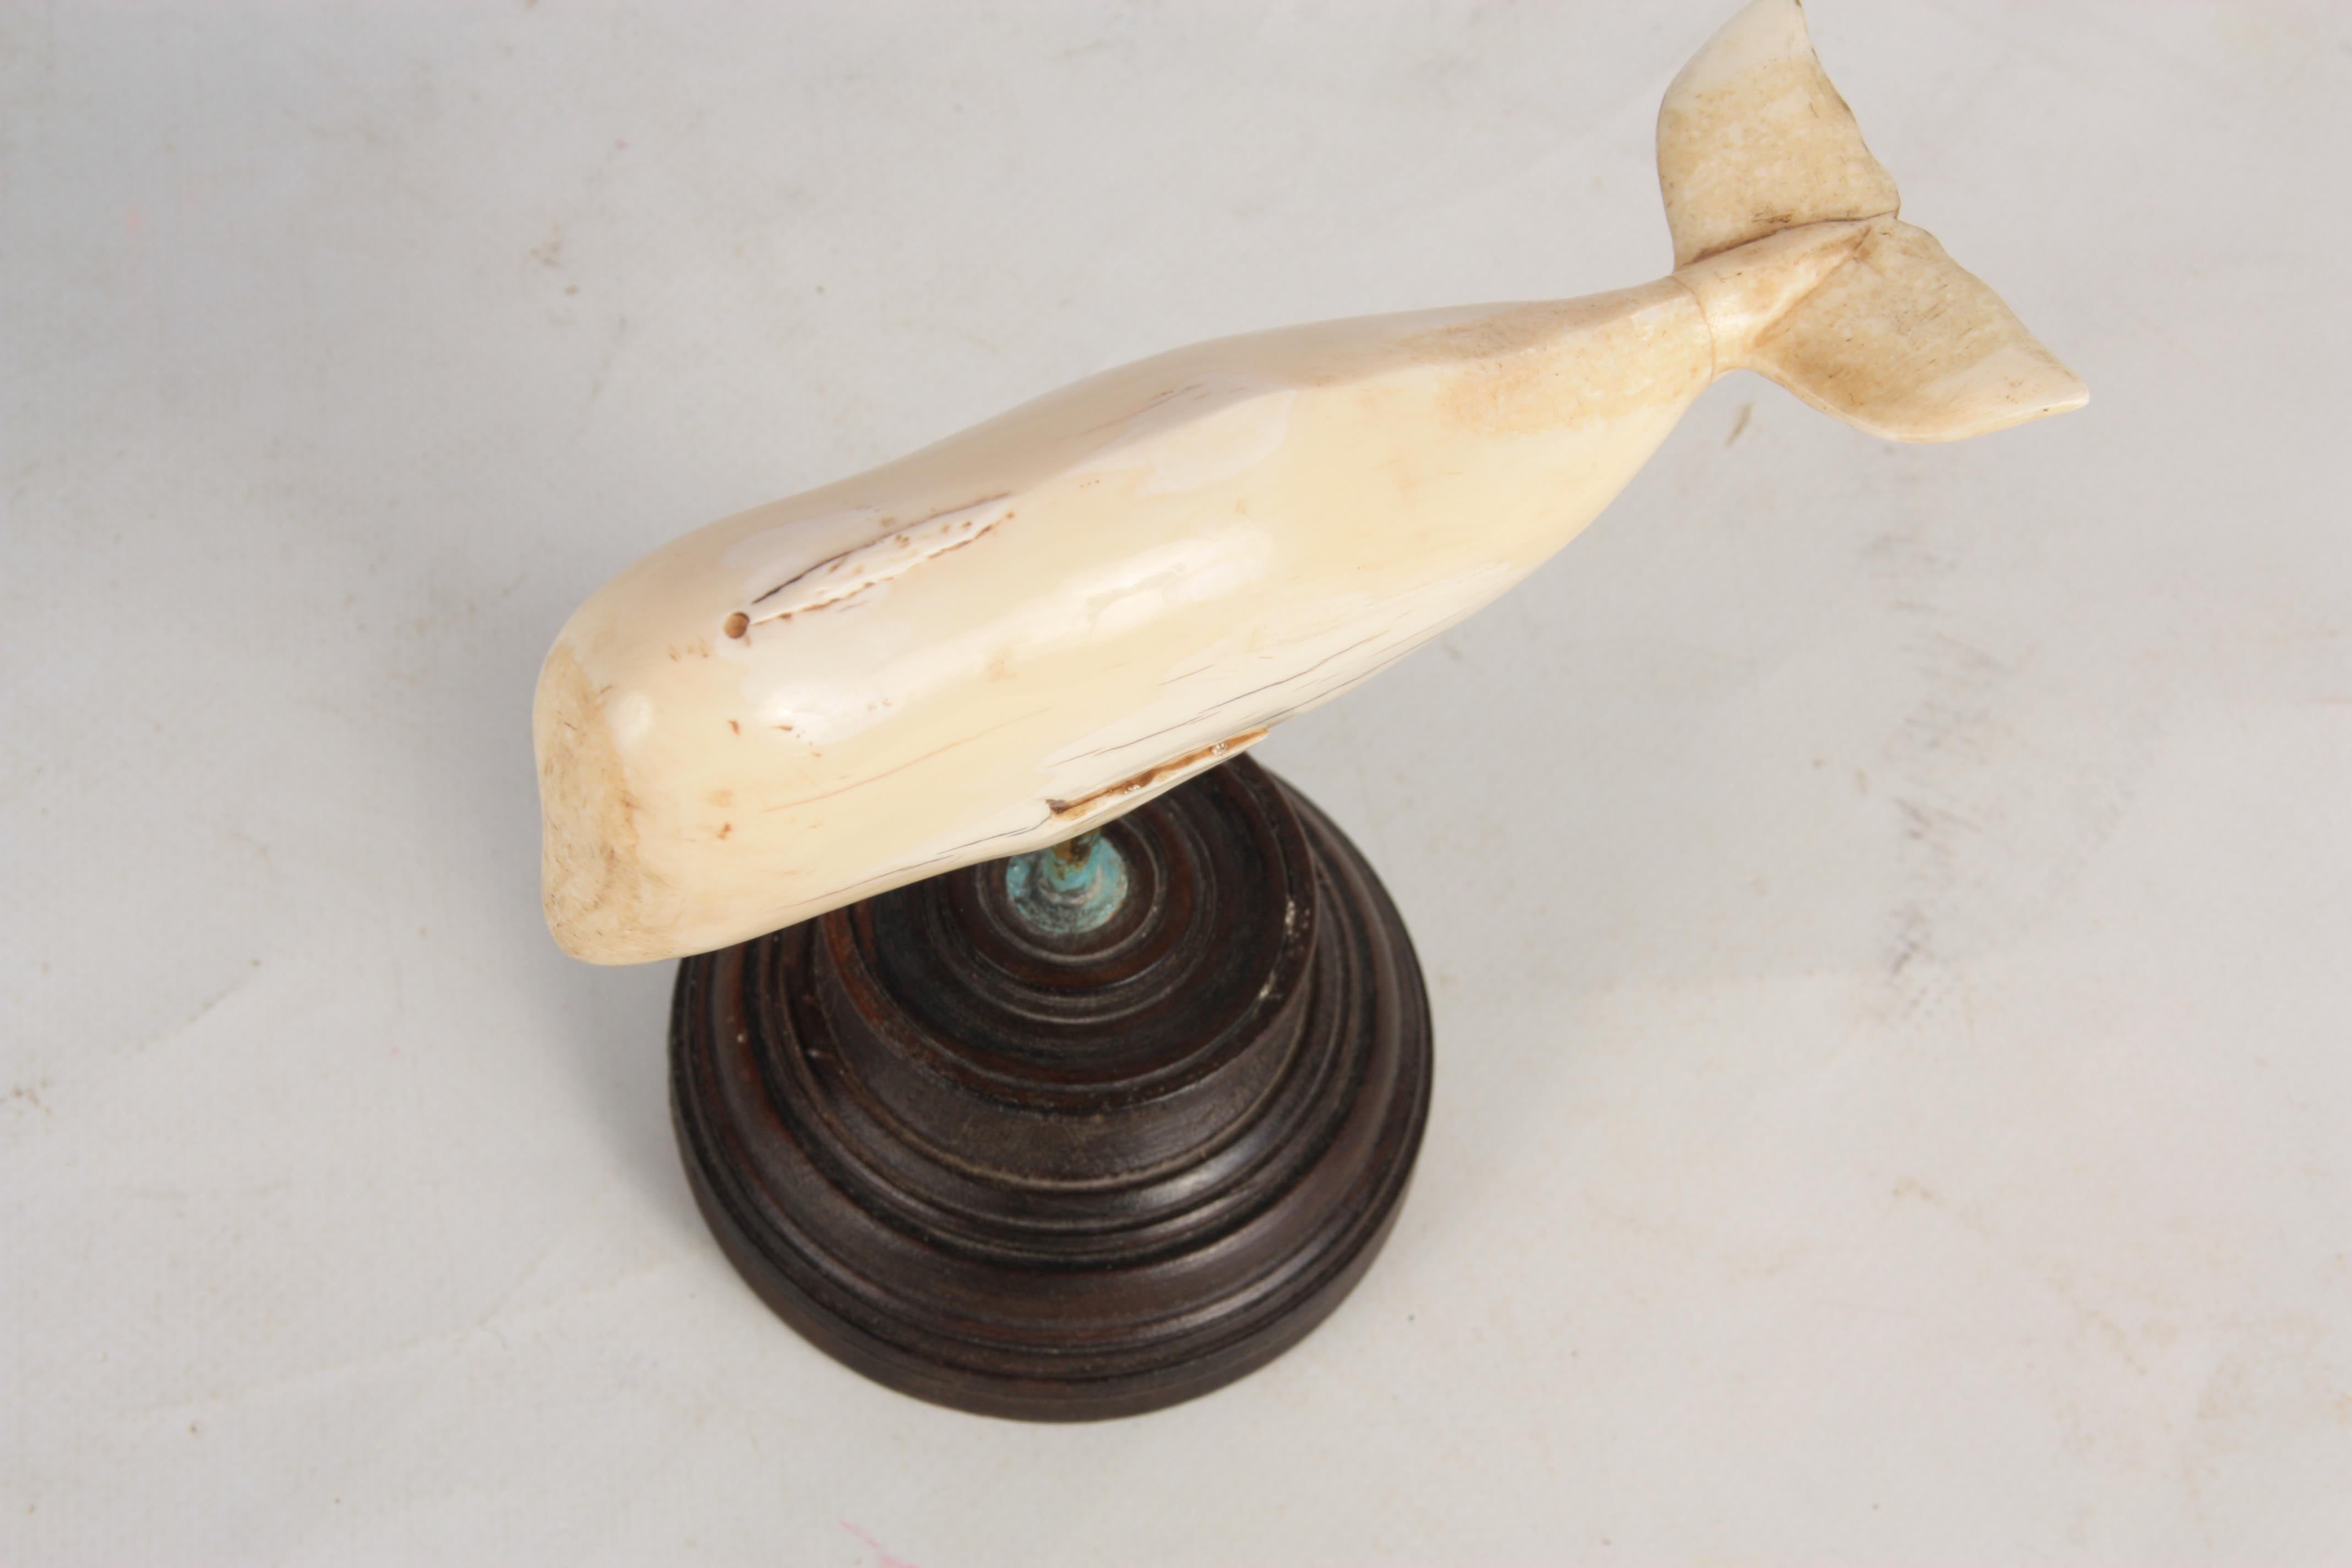 A 19TH CENTURY SAILOR'S WHALE TOOTH SCULPTURE ON STAND modelled as a sperm whale mounted on a turned - Image 9 of 9